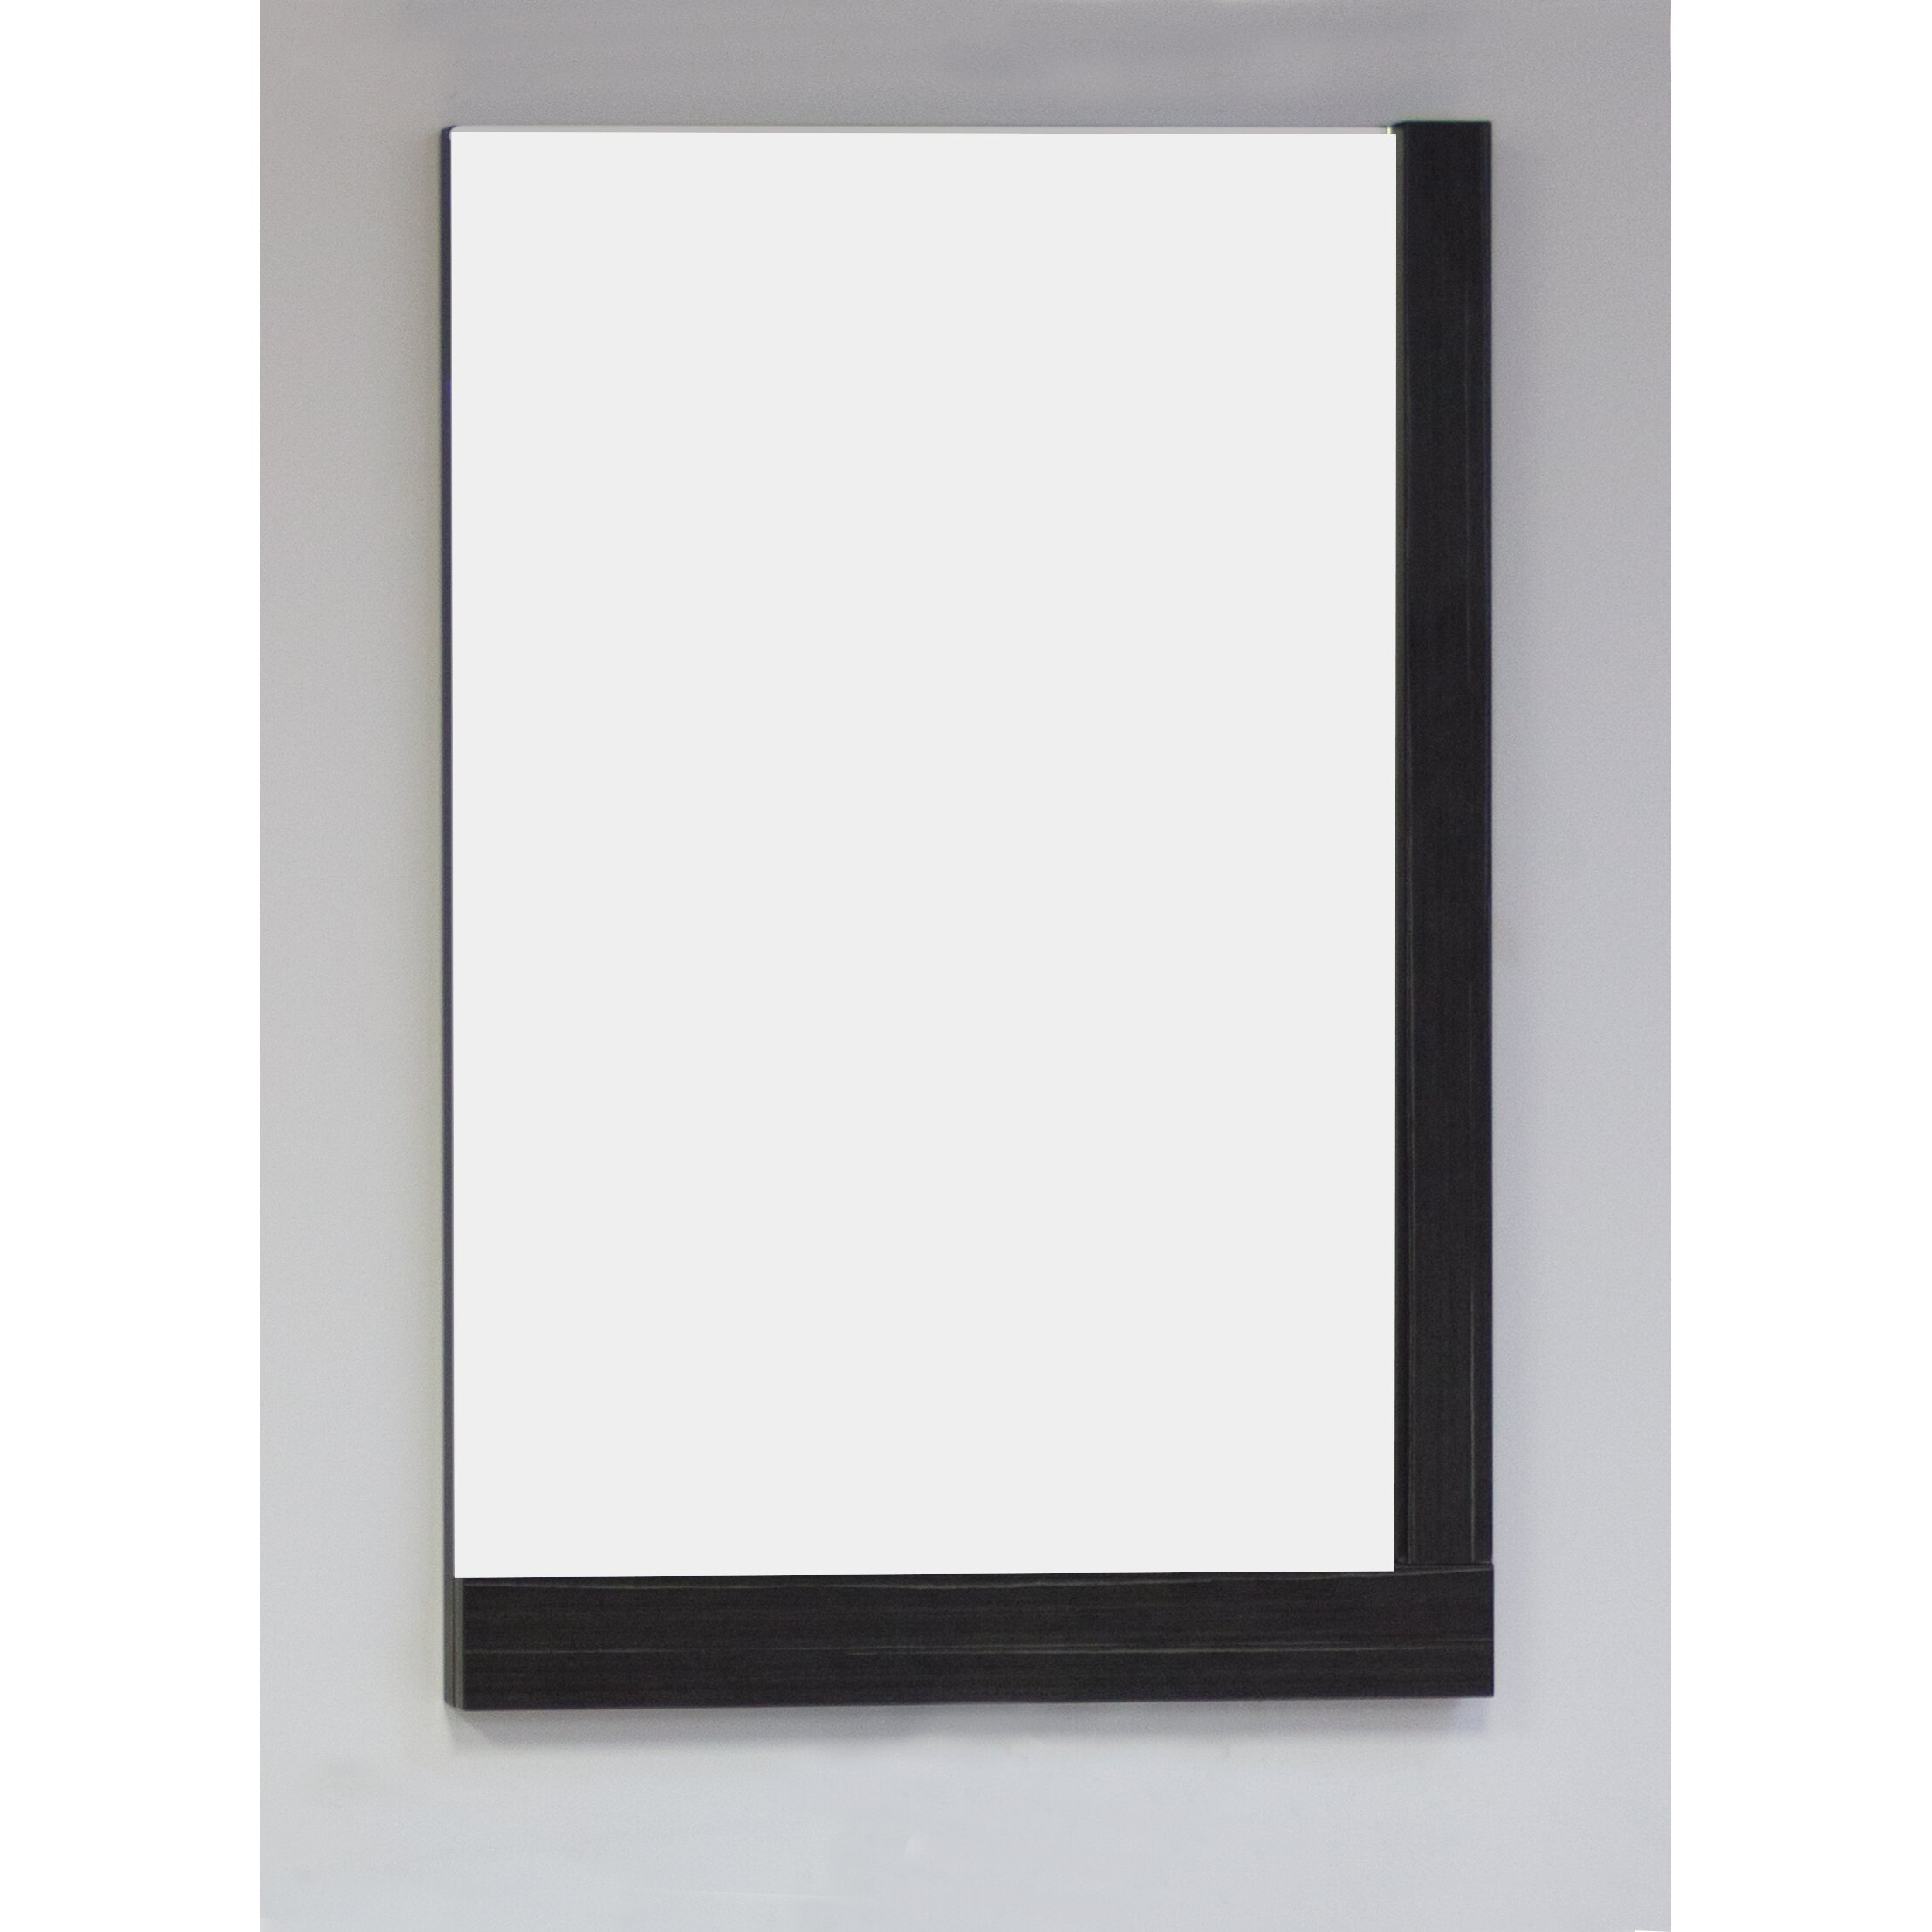 American imaginations modern wall mirror reviews for Contemporary wall mirrors